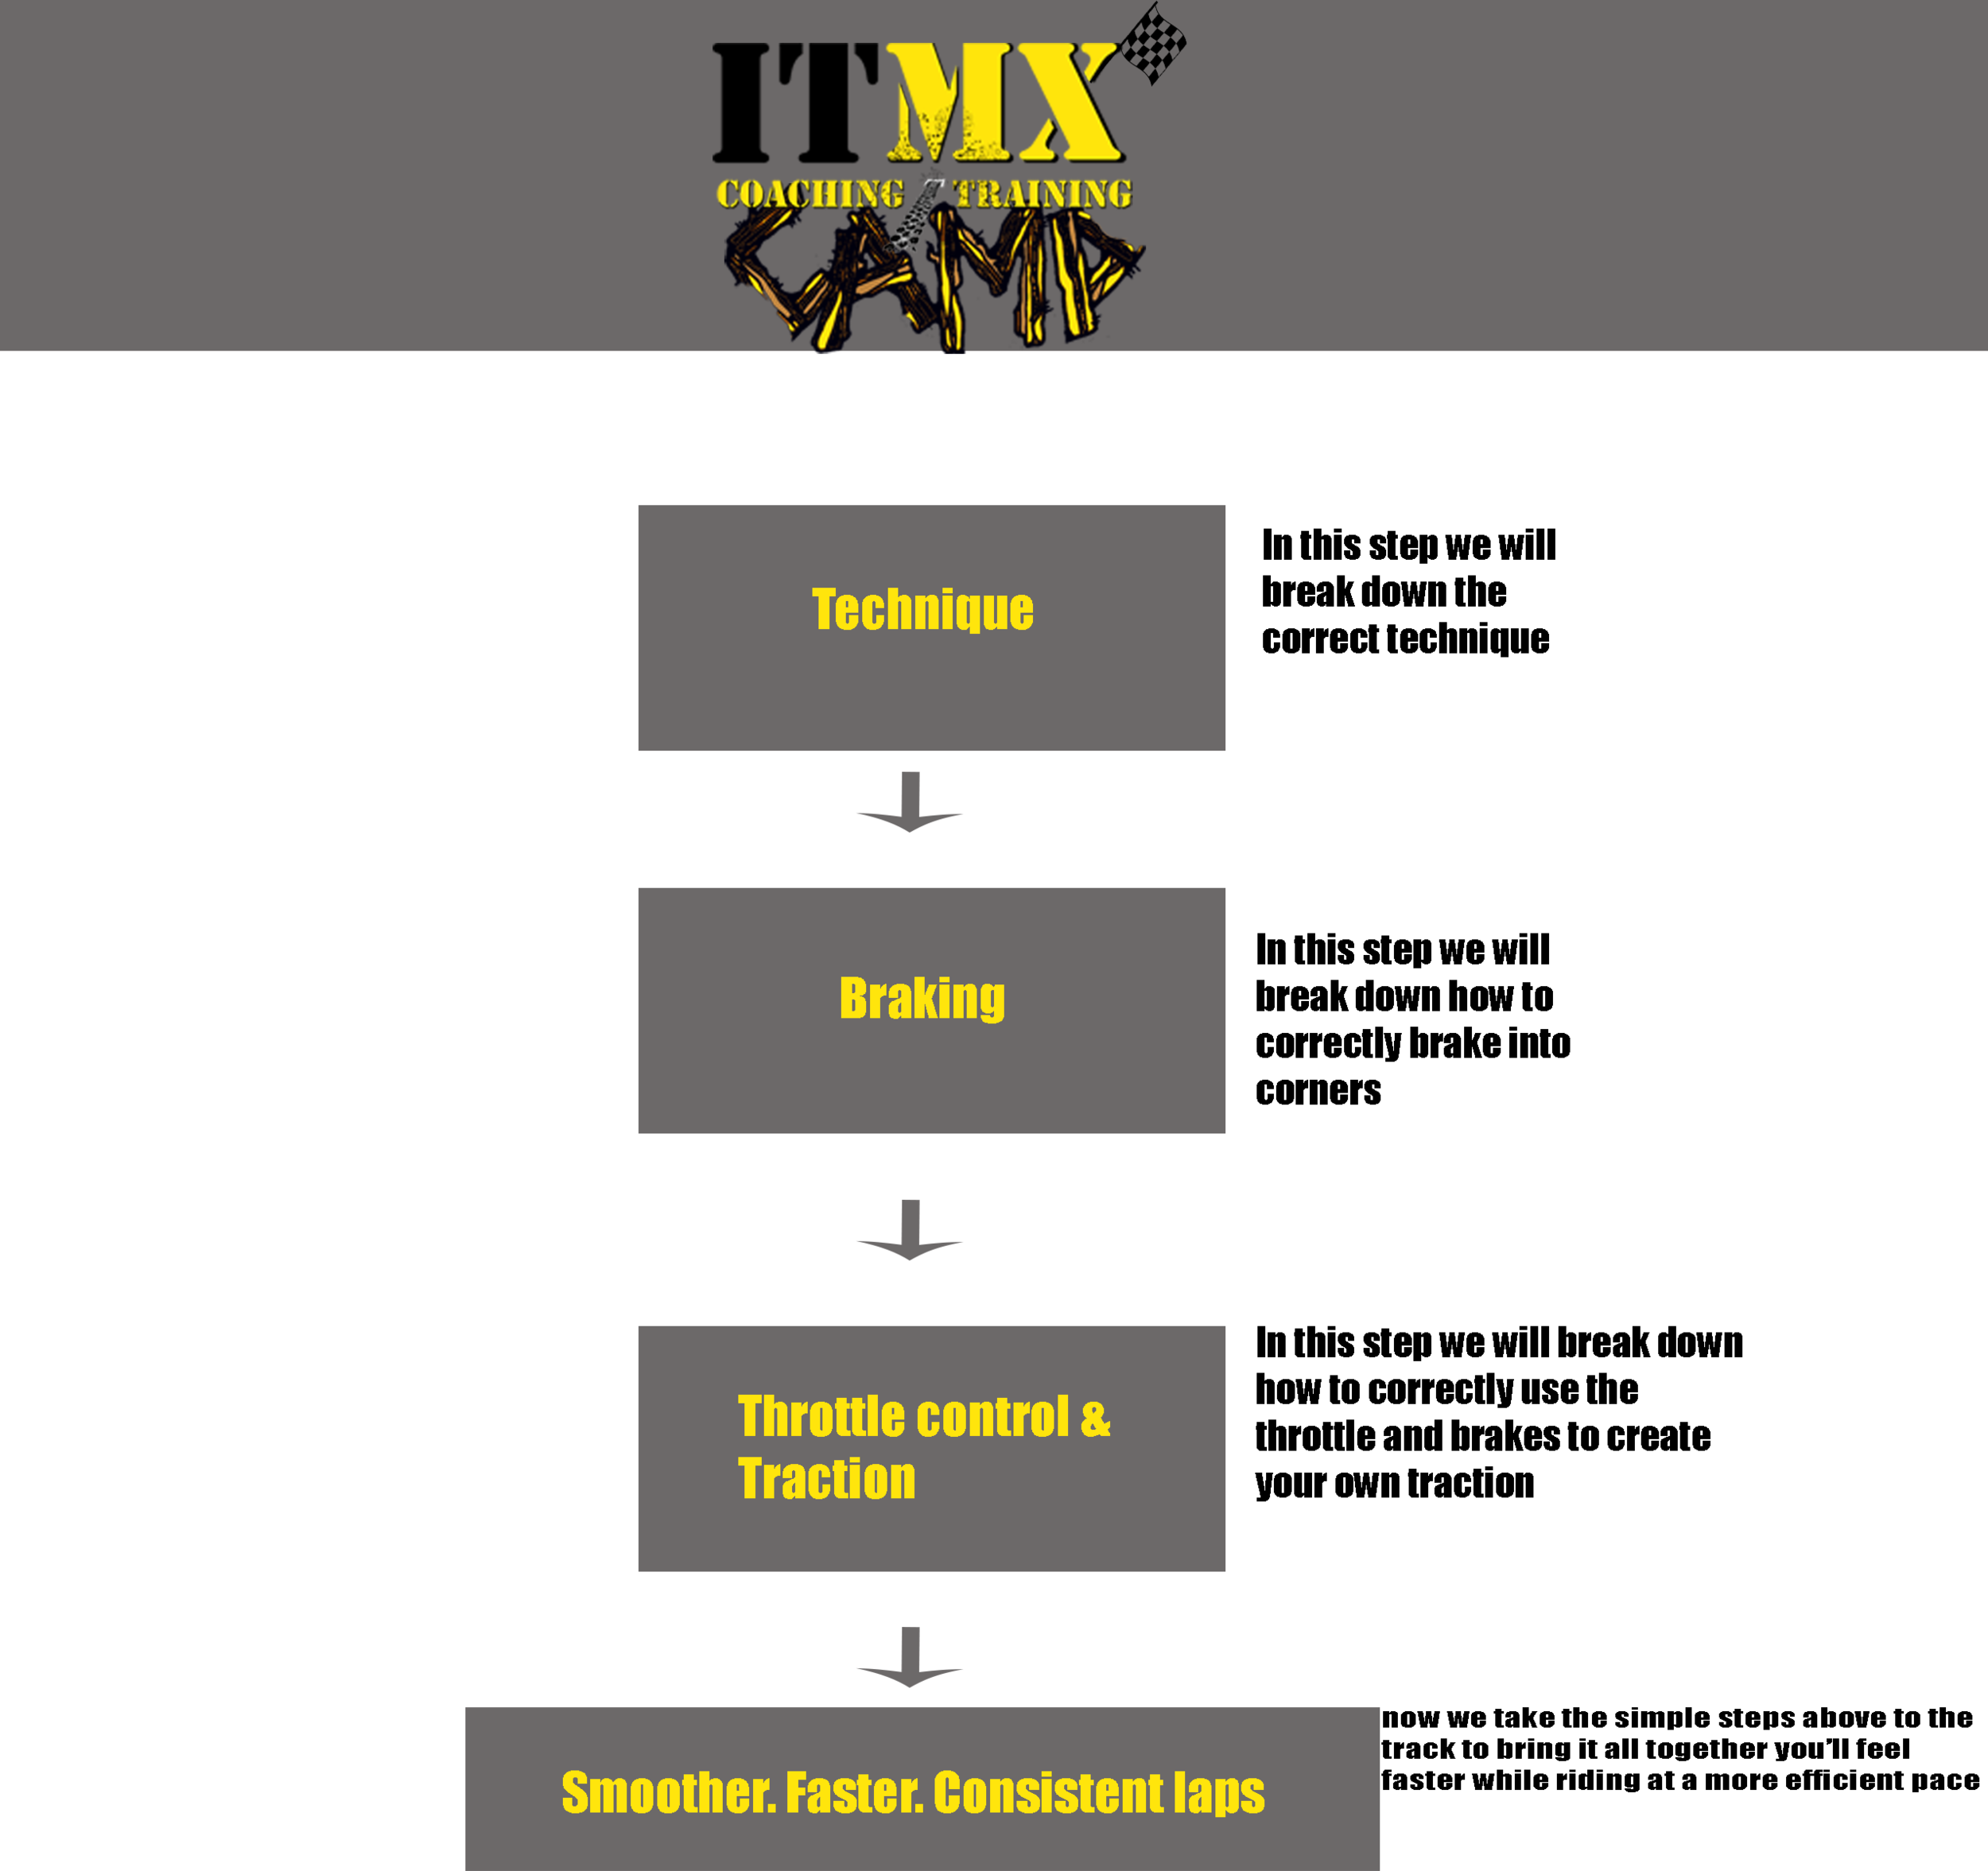 ITMX 3-step training process